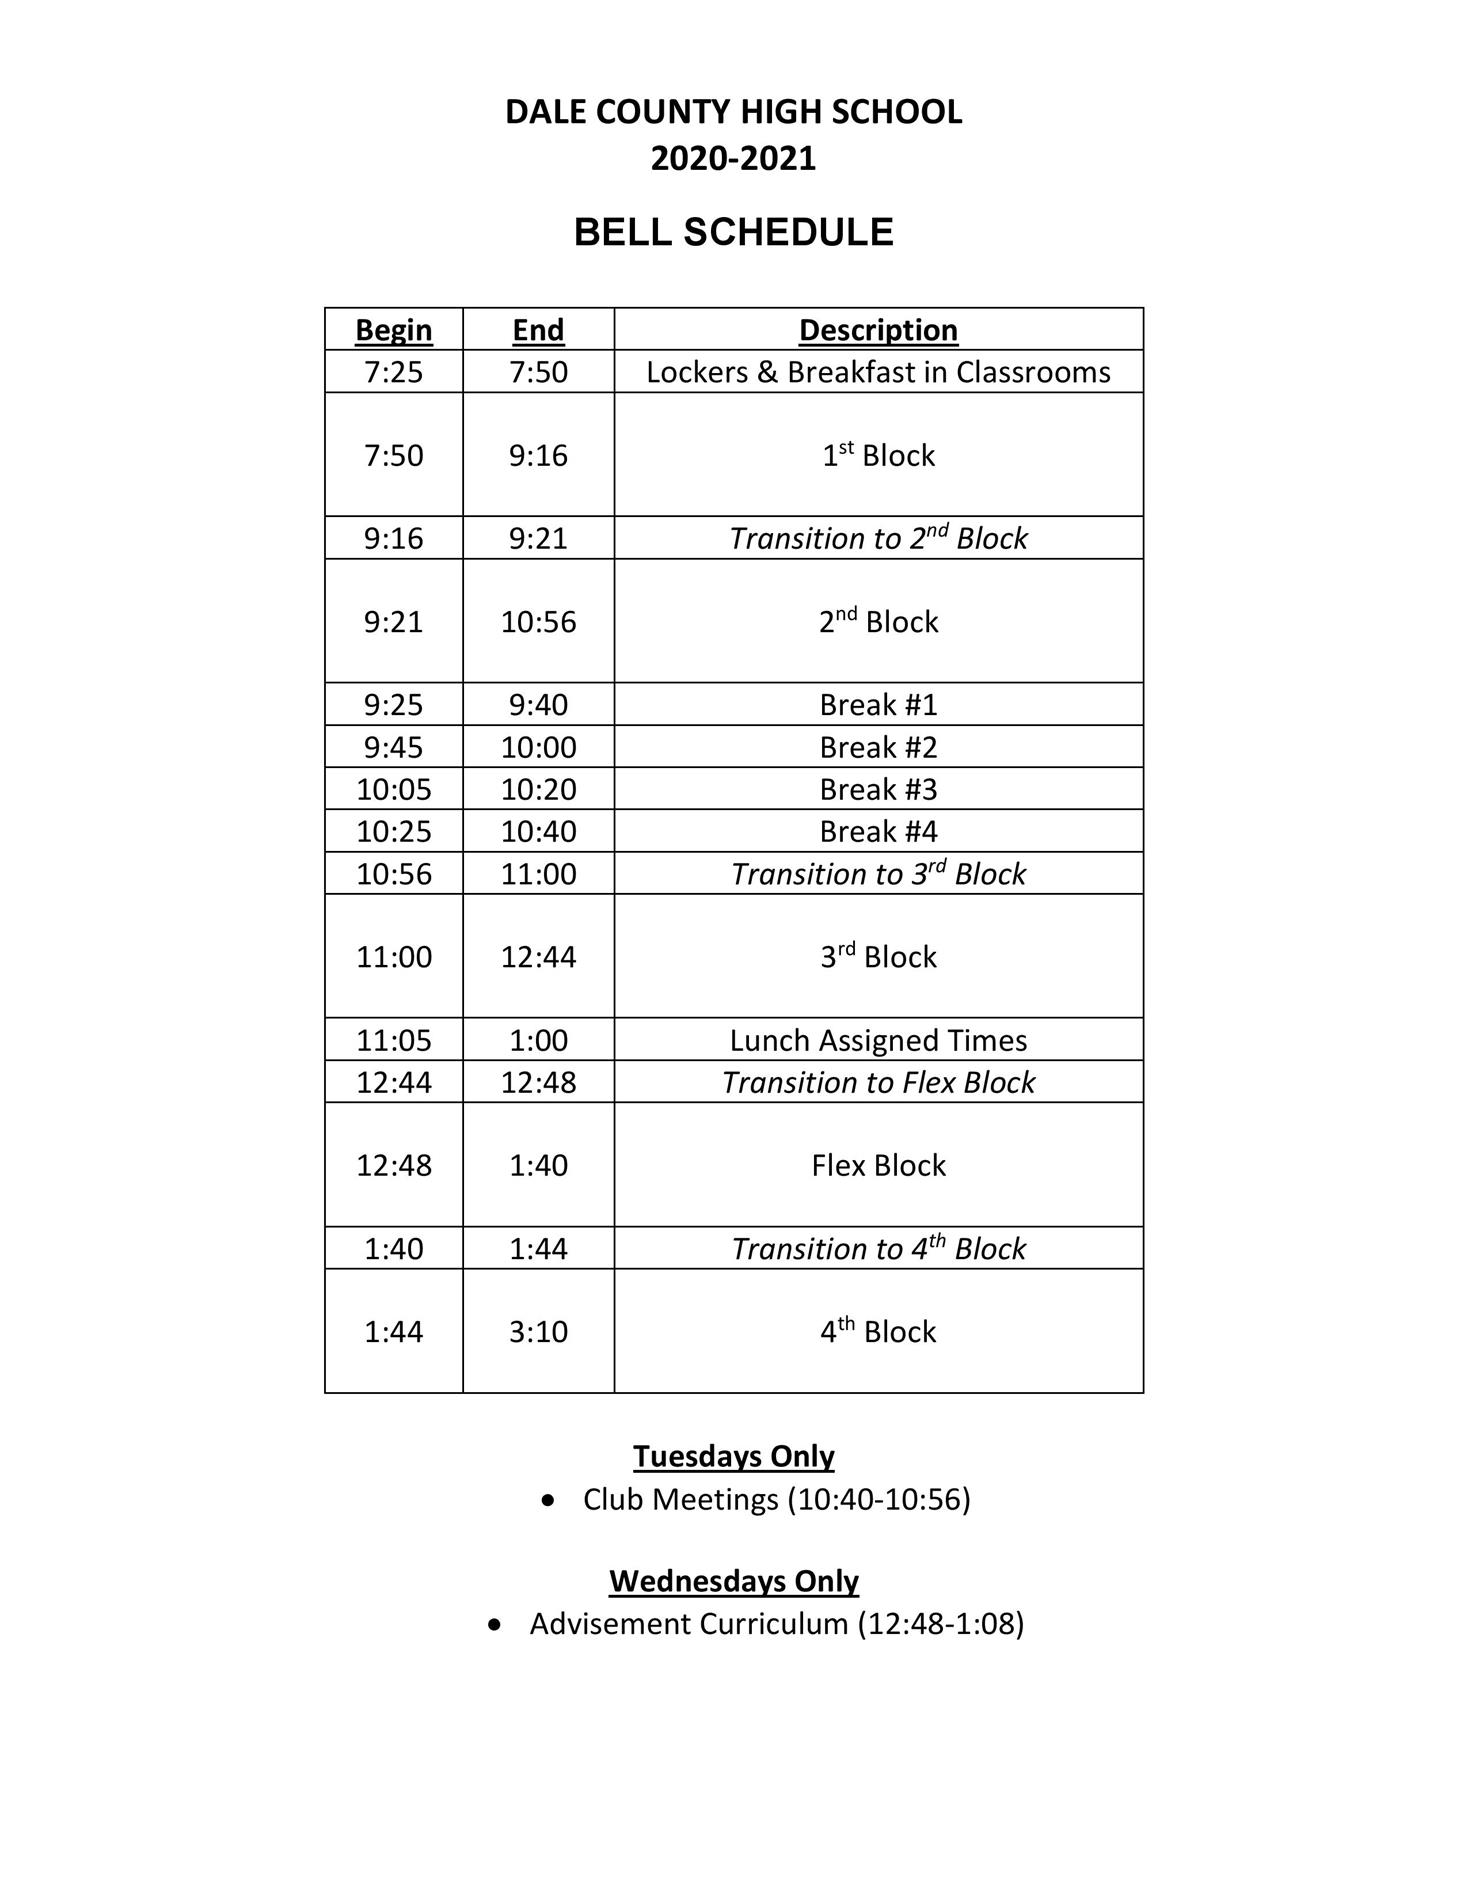 the bell schedule.